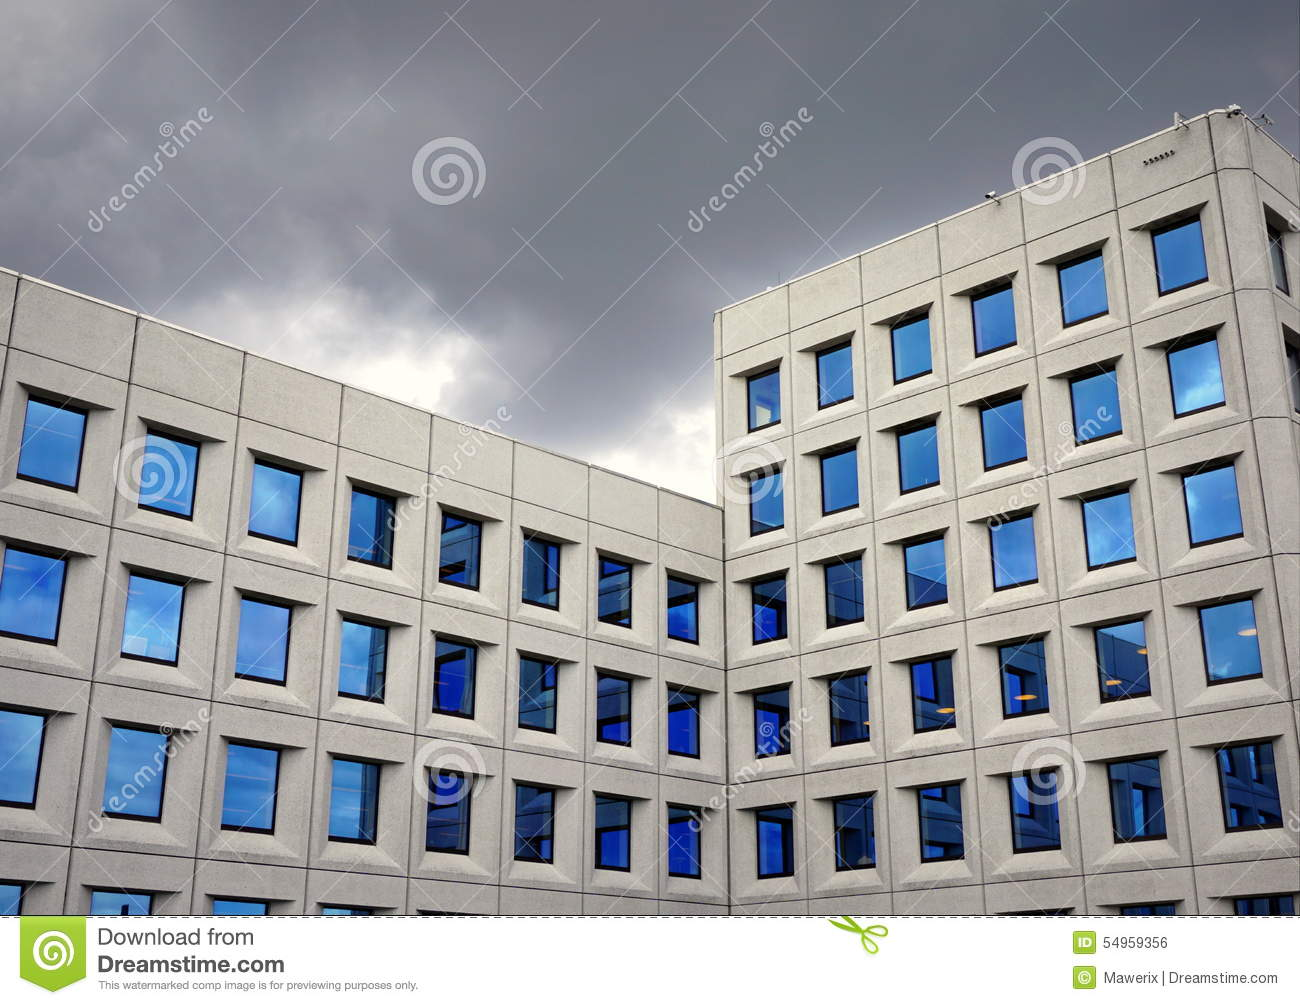 Architecture scandinave photo stock image 54959356 for Architecture traditionnelle scandinave